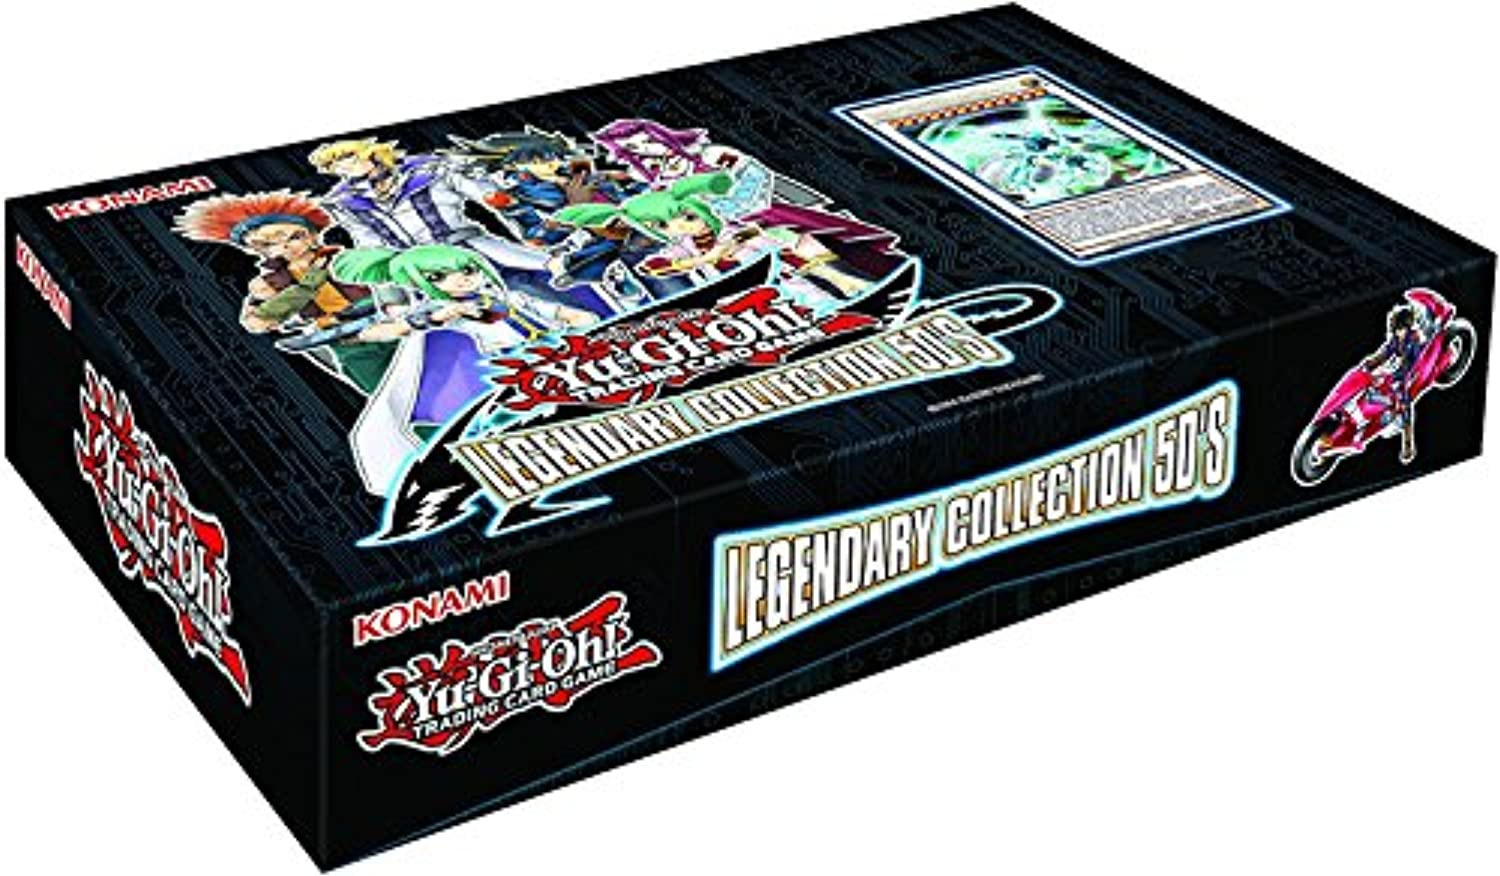 Yugioh TCG Card Game Legendary Collection Set  5 LC5 5D's Box Set  48 Cards (5 mega Packs boosters + 3 Promo Cards)